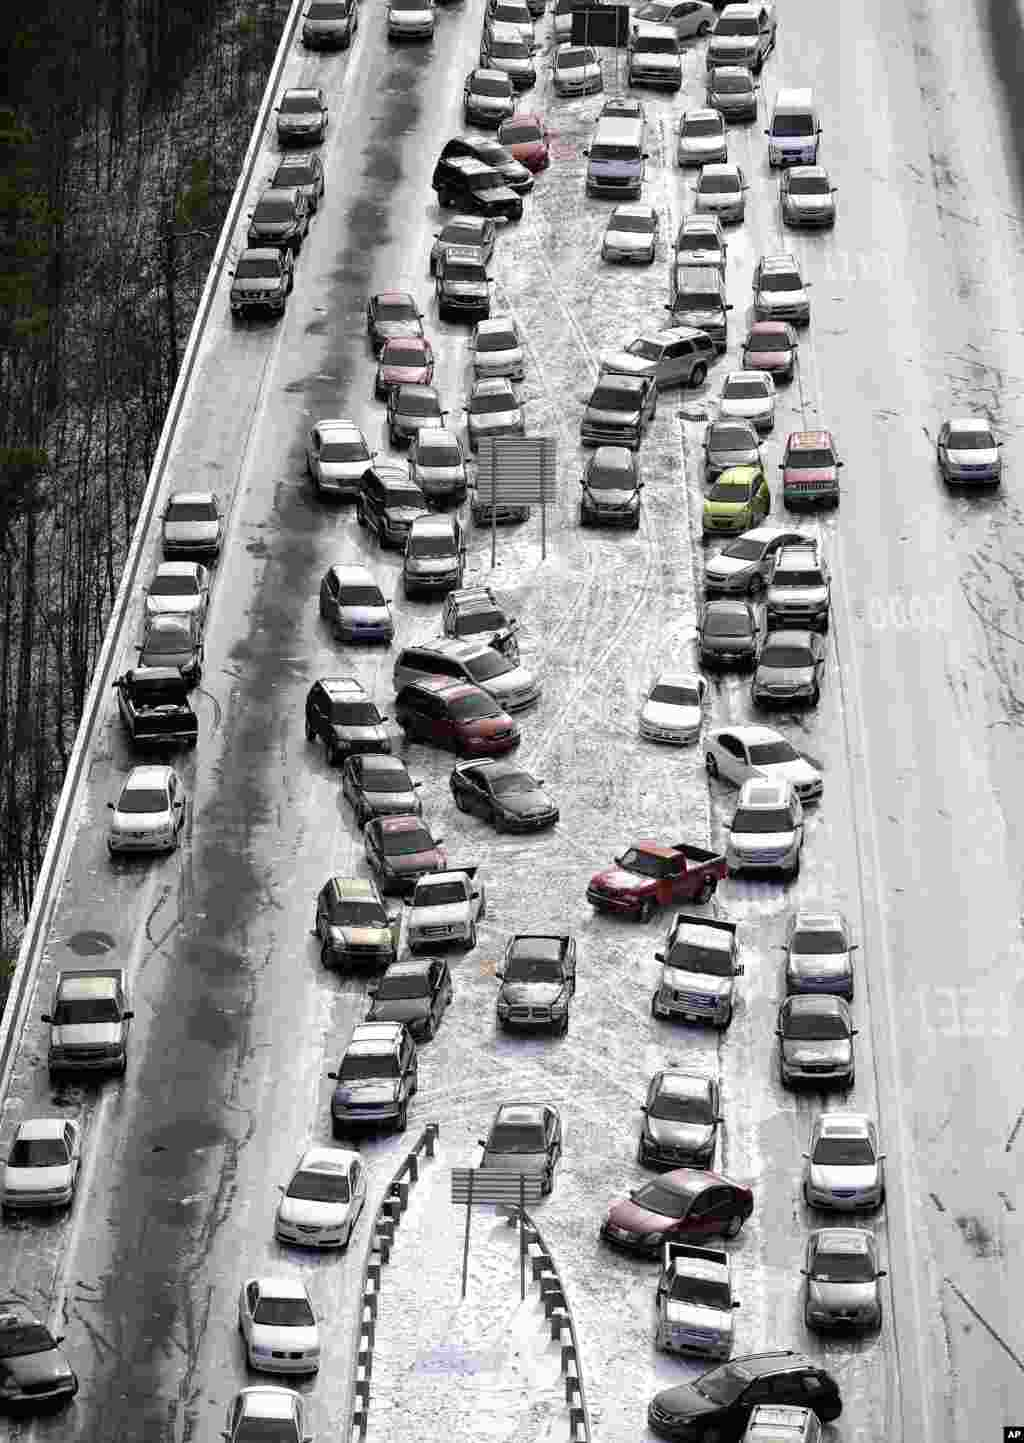 Abandoned cars on I-75 headed northbound near the Chattahoochee River overpass are piled up in the median of the ice-covered interstate after a winter snow storm in Atlanta, Georgia, USA. Georgia Gov. Nathan Deal said that the National Guard was sending military Humvees onto Atlanta's snarled freeway system in an attempt to move stranded school buses and get food and water to people.